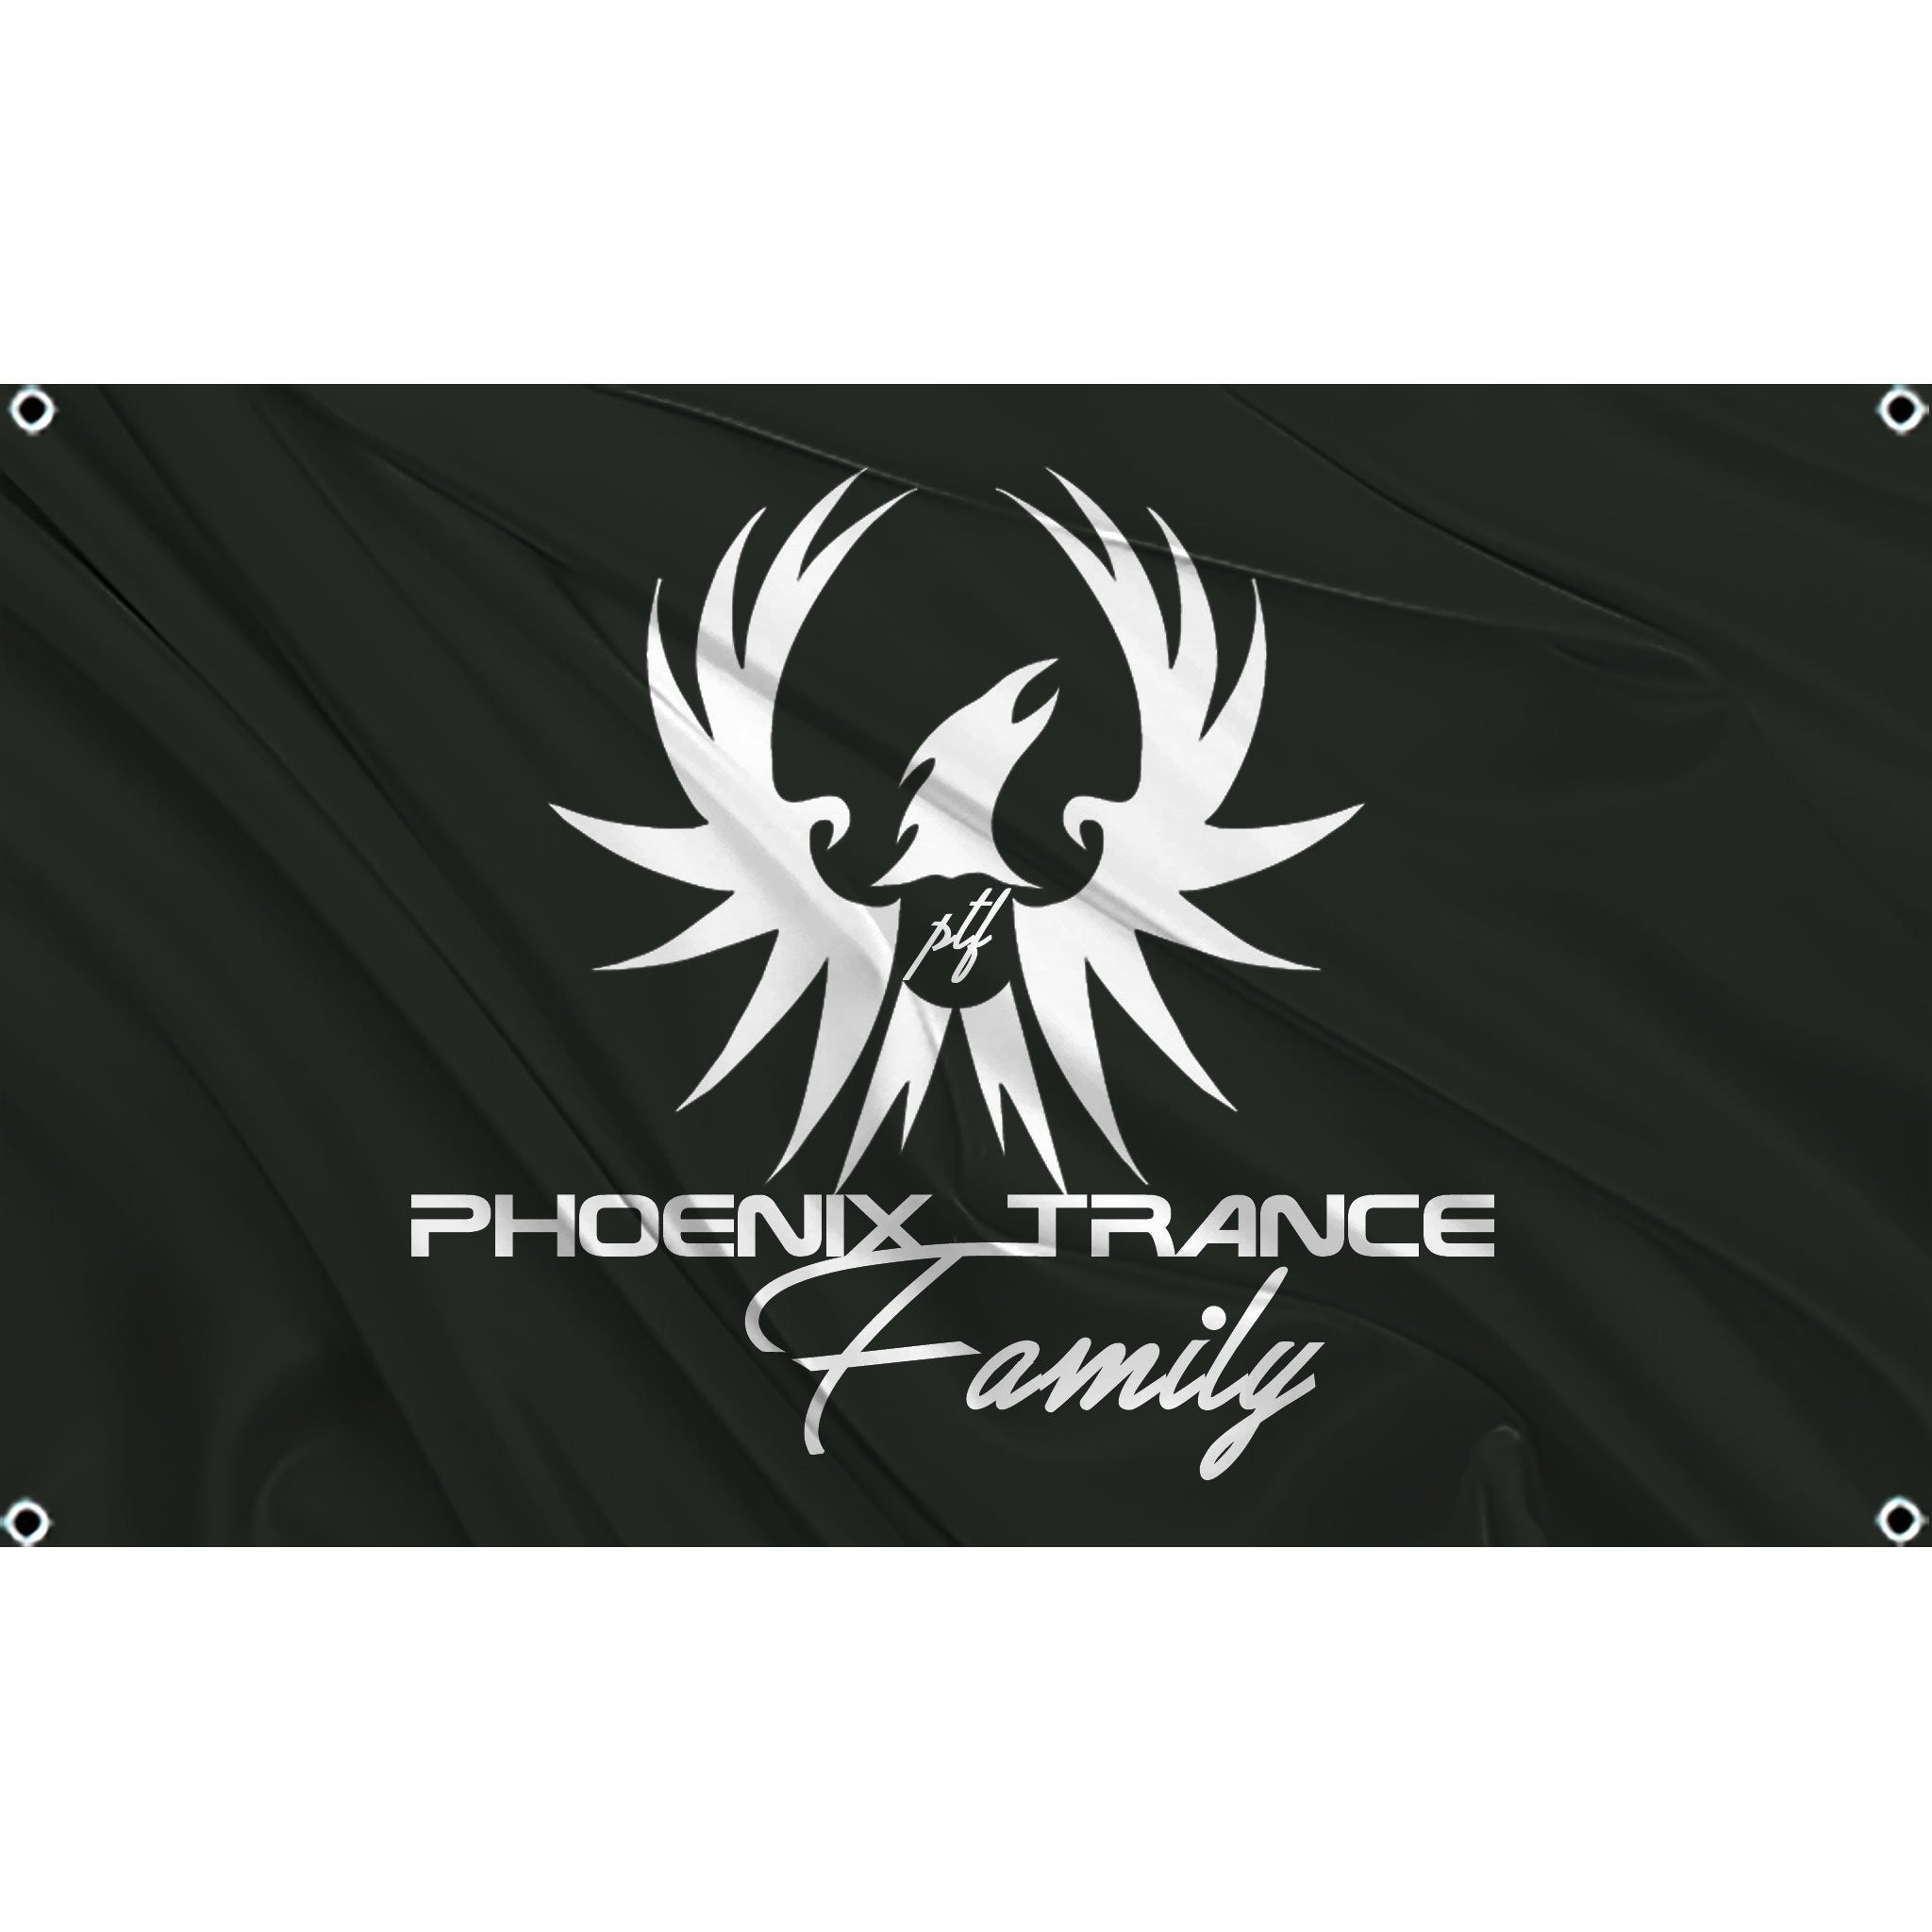 White Phoenix Trance family logo on black flag